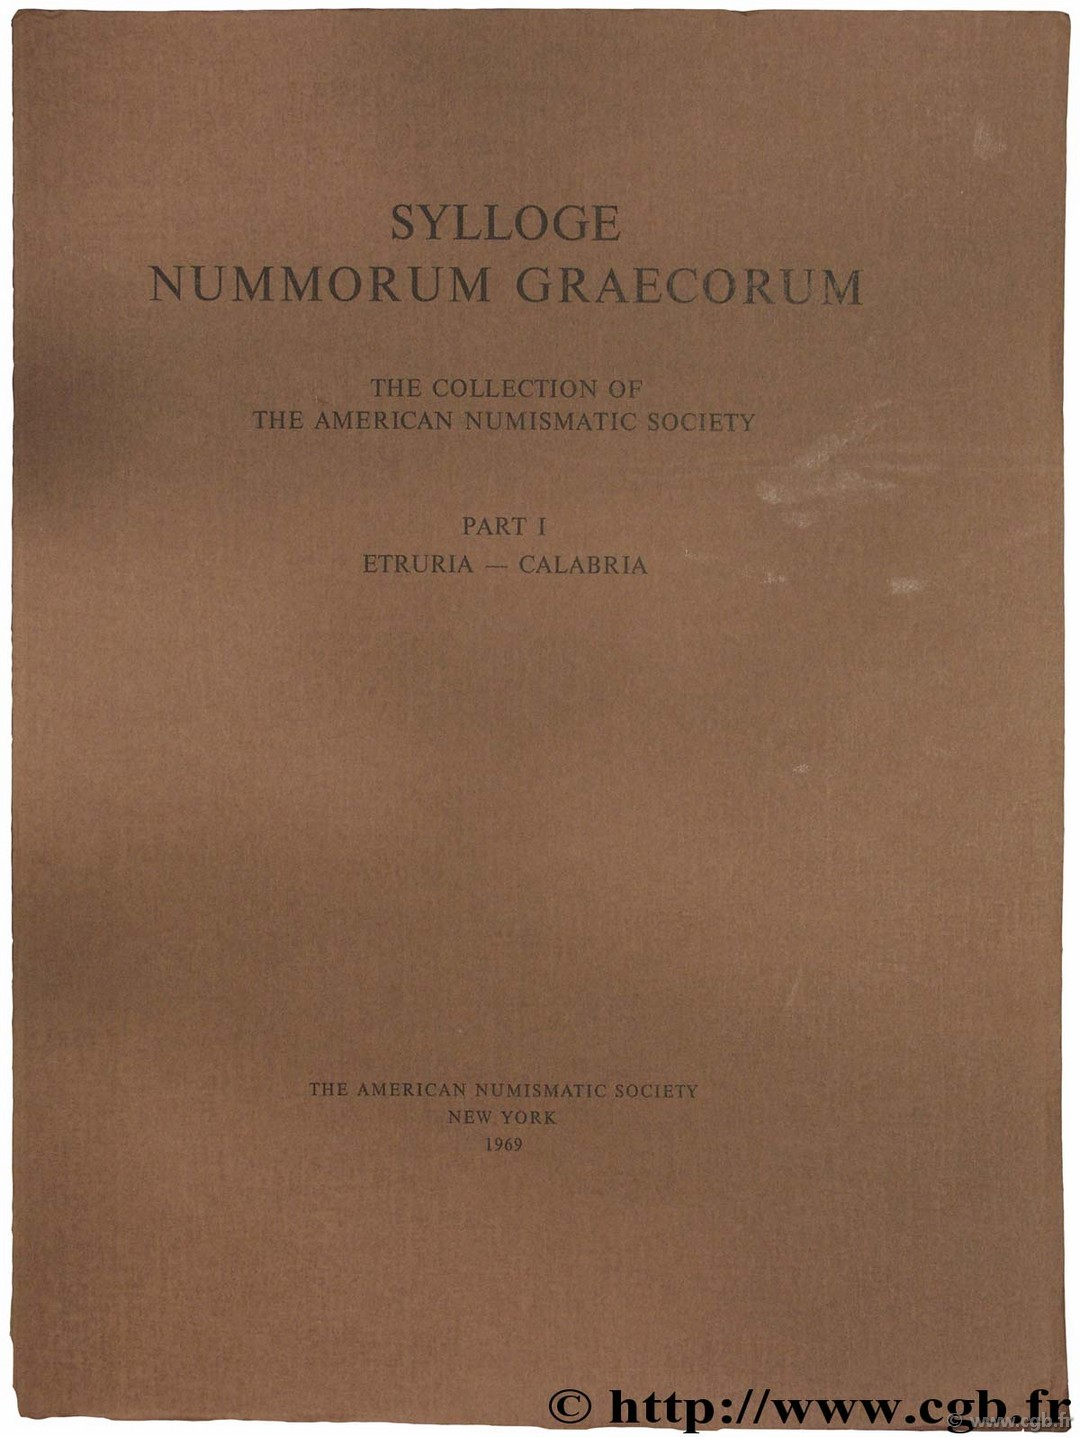 Sylloge Nummorum Graecorum (S.N.G.), The collection of the American Numismatic Society, part I, Etruria-Calabria